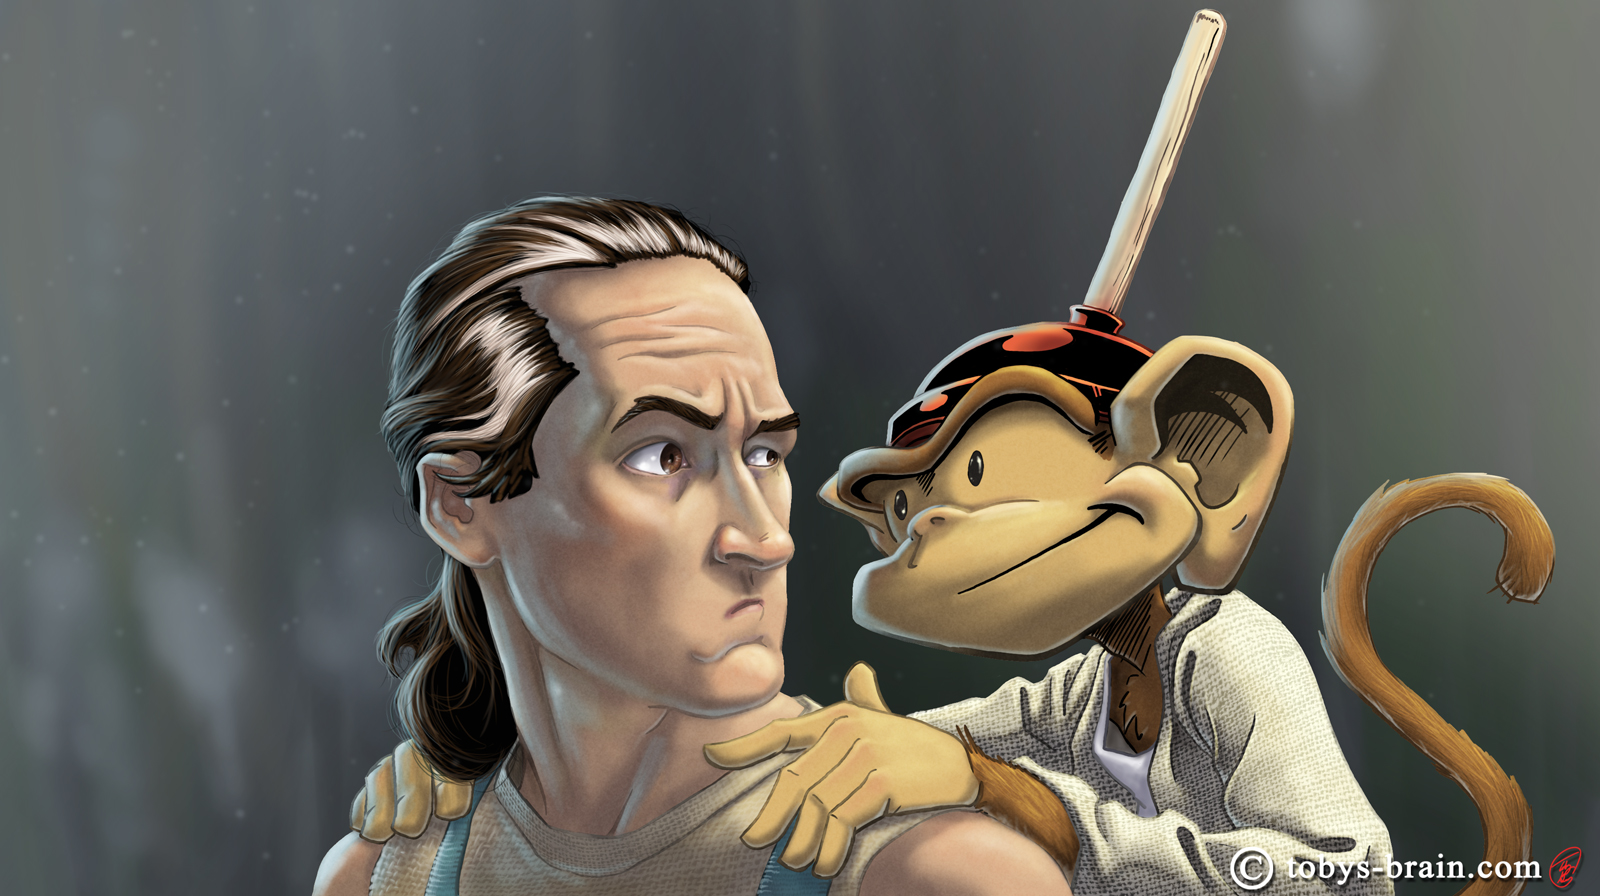 A digital painting of myself as Luke Skywalker and my character, Plunger Monkey Dynamo, as Yoda. I did this to commemorate going to see Star Wars: The Force Awakens and to highlight the creative impact Star Wars has had on my life